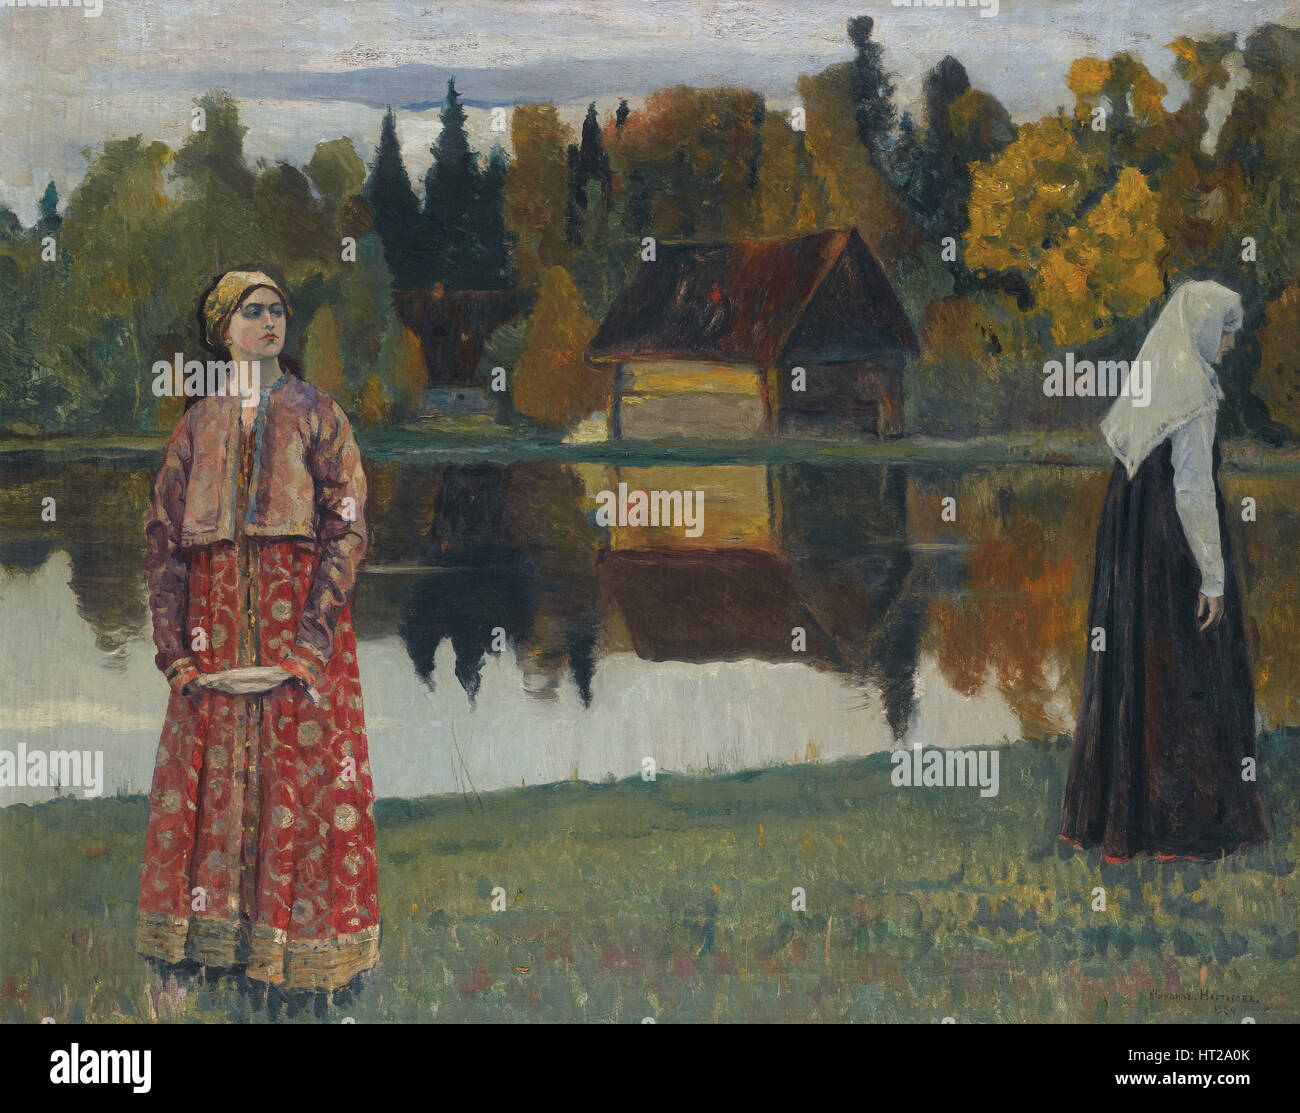 By the Lake, 1924. Artist: Nesterov, Mikhail Vasilyevich (1862-1942) Stock Photo